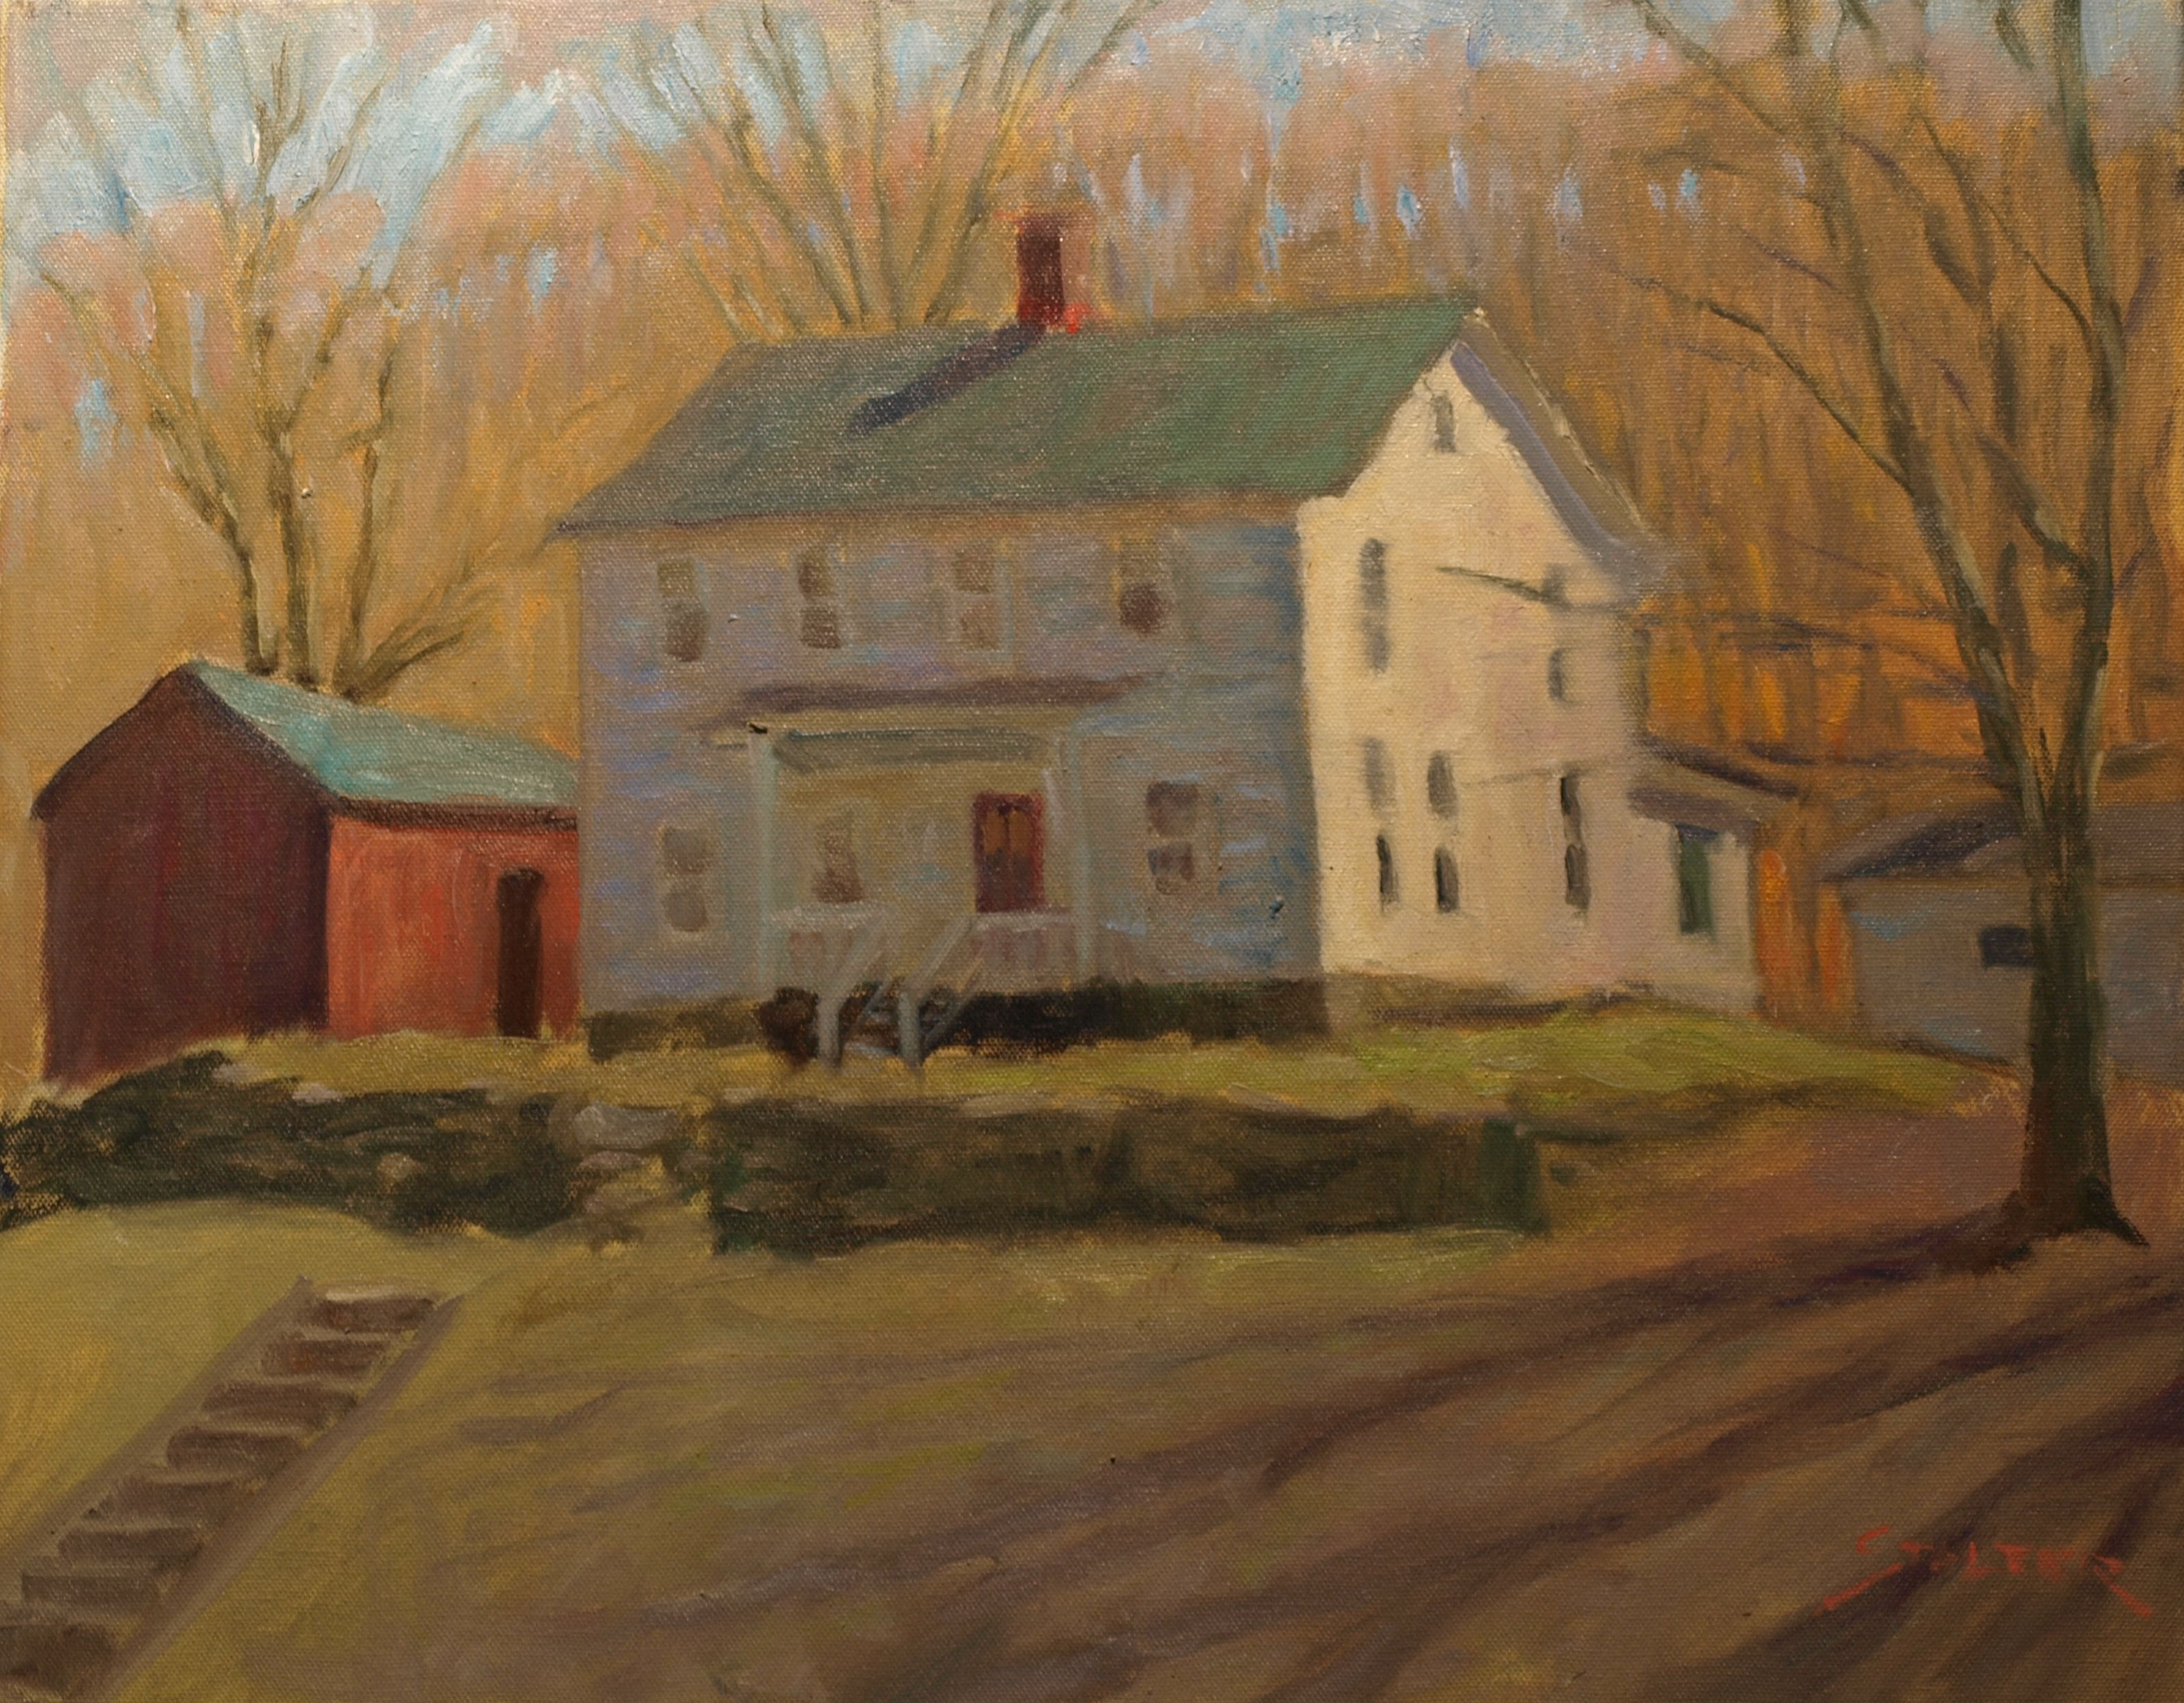 Gaylordsville House in Early Spring, Oil on Canvas, 16 x 20 Inches, by Richard Stalter, $450